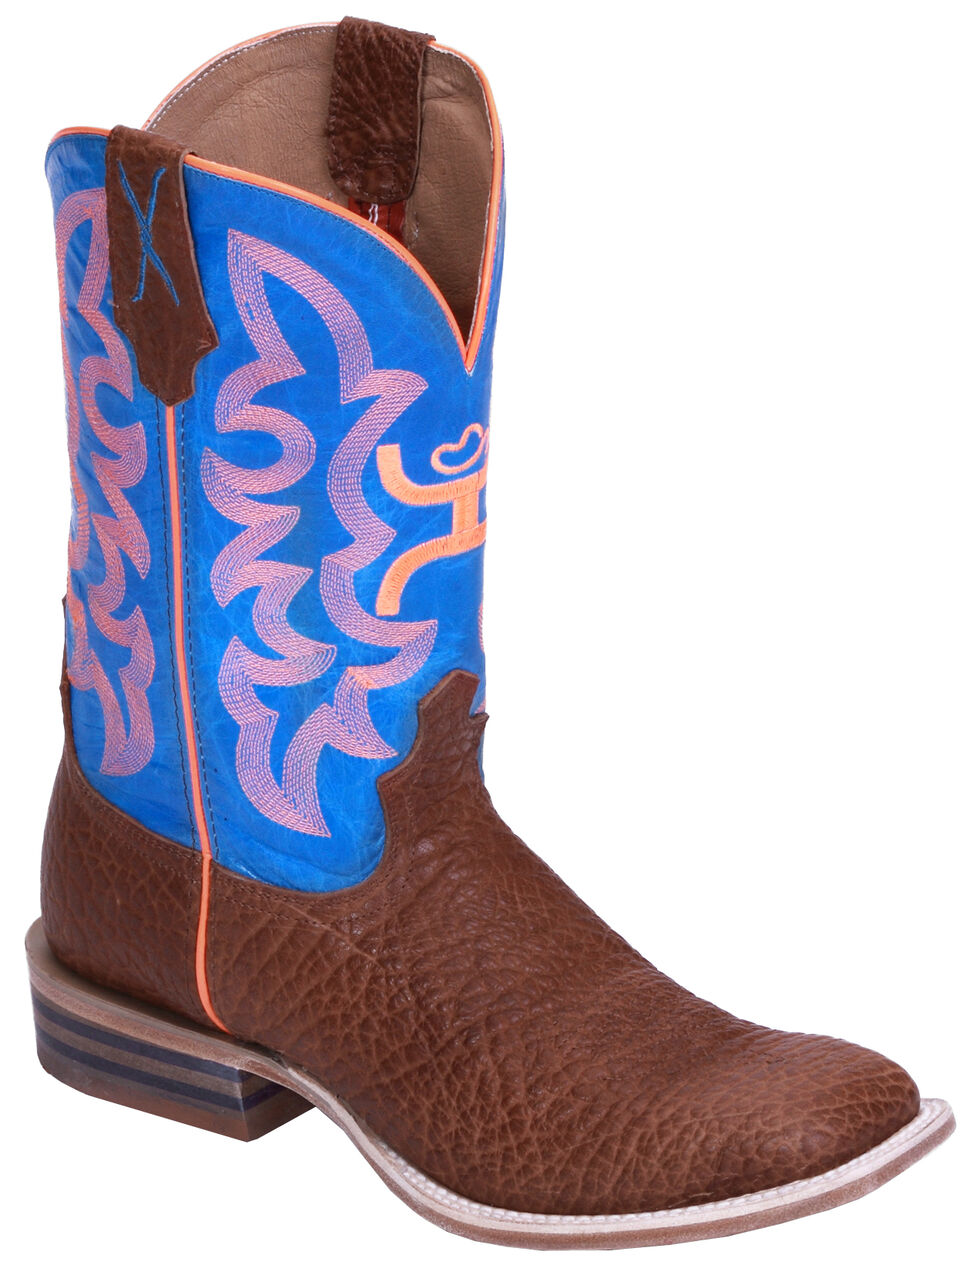 Hooey by Twisted X Neon Blue Cowboy Boots - Wide Square Toe, Cognac, hi-res